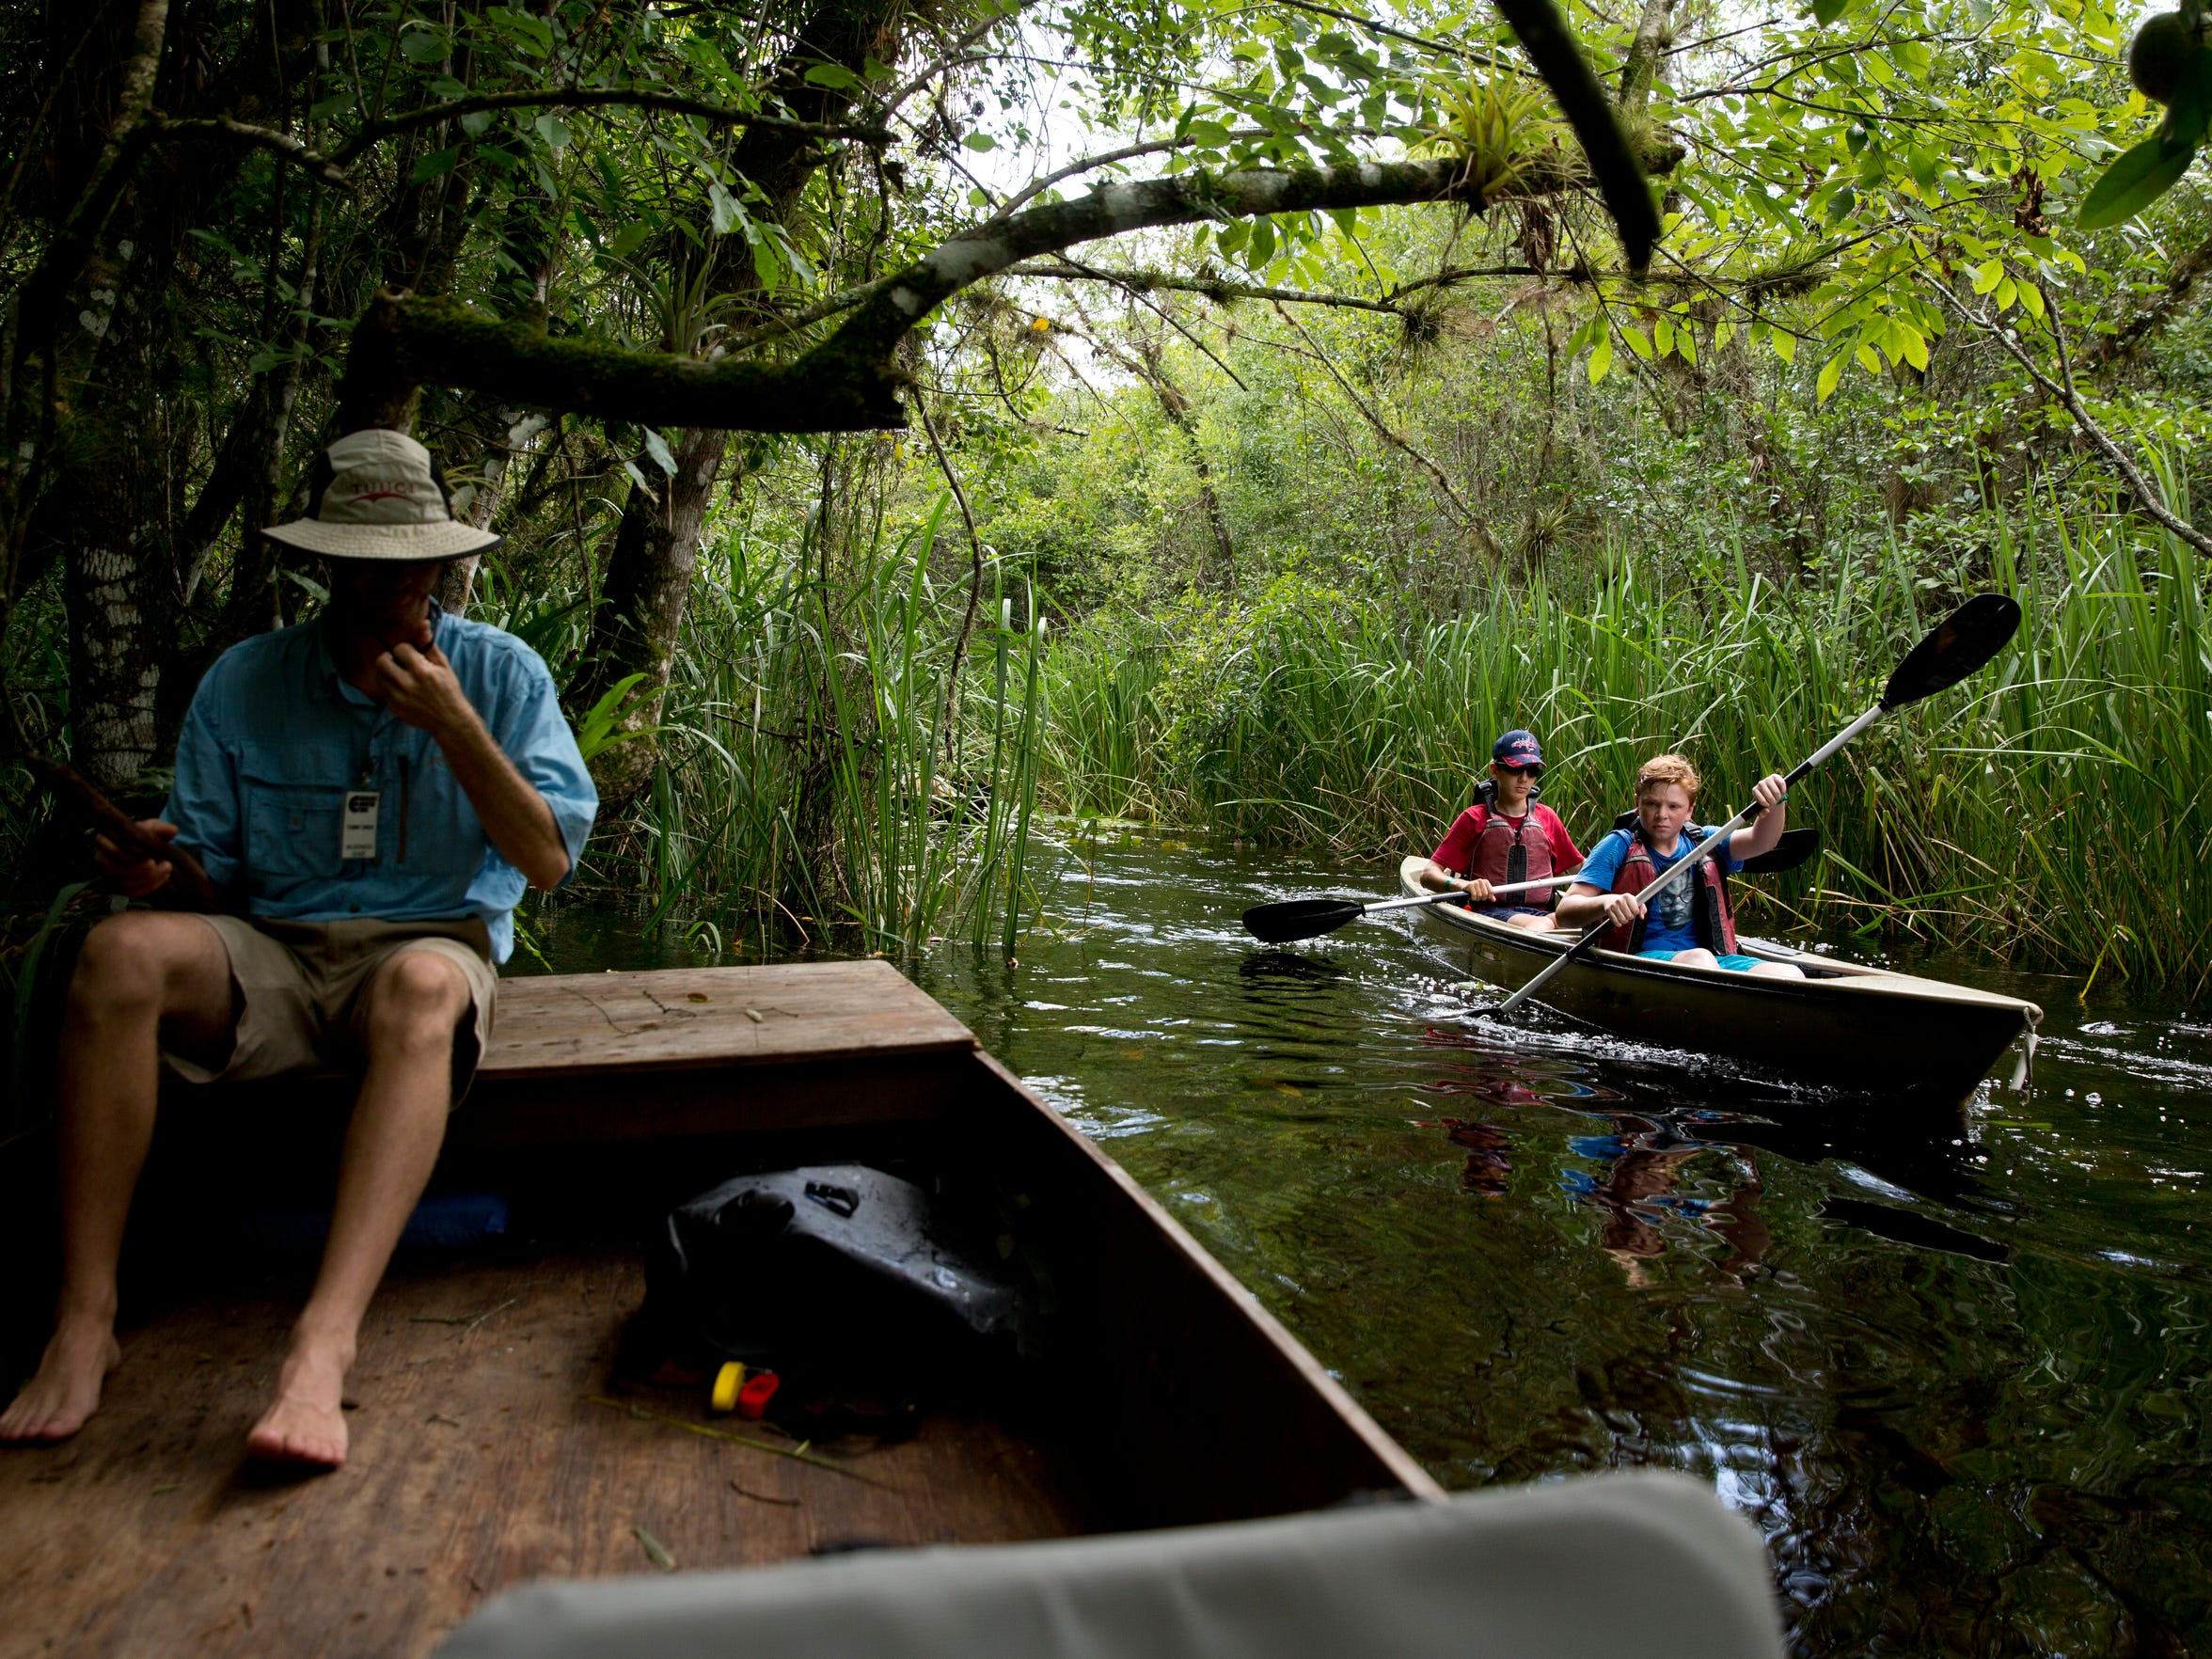 Tourists paddle up Turner River within the Big Cypress